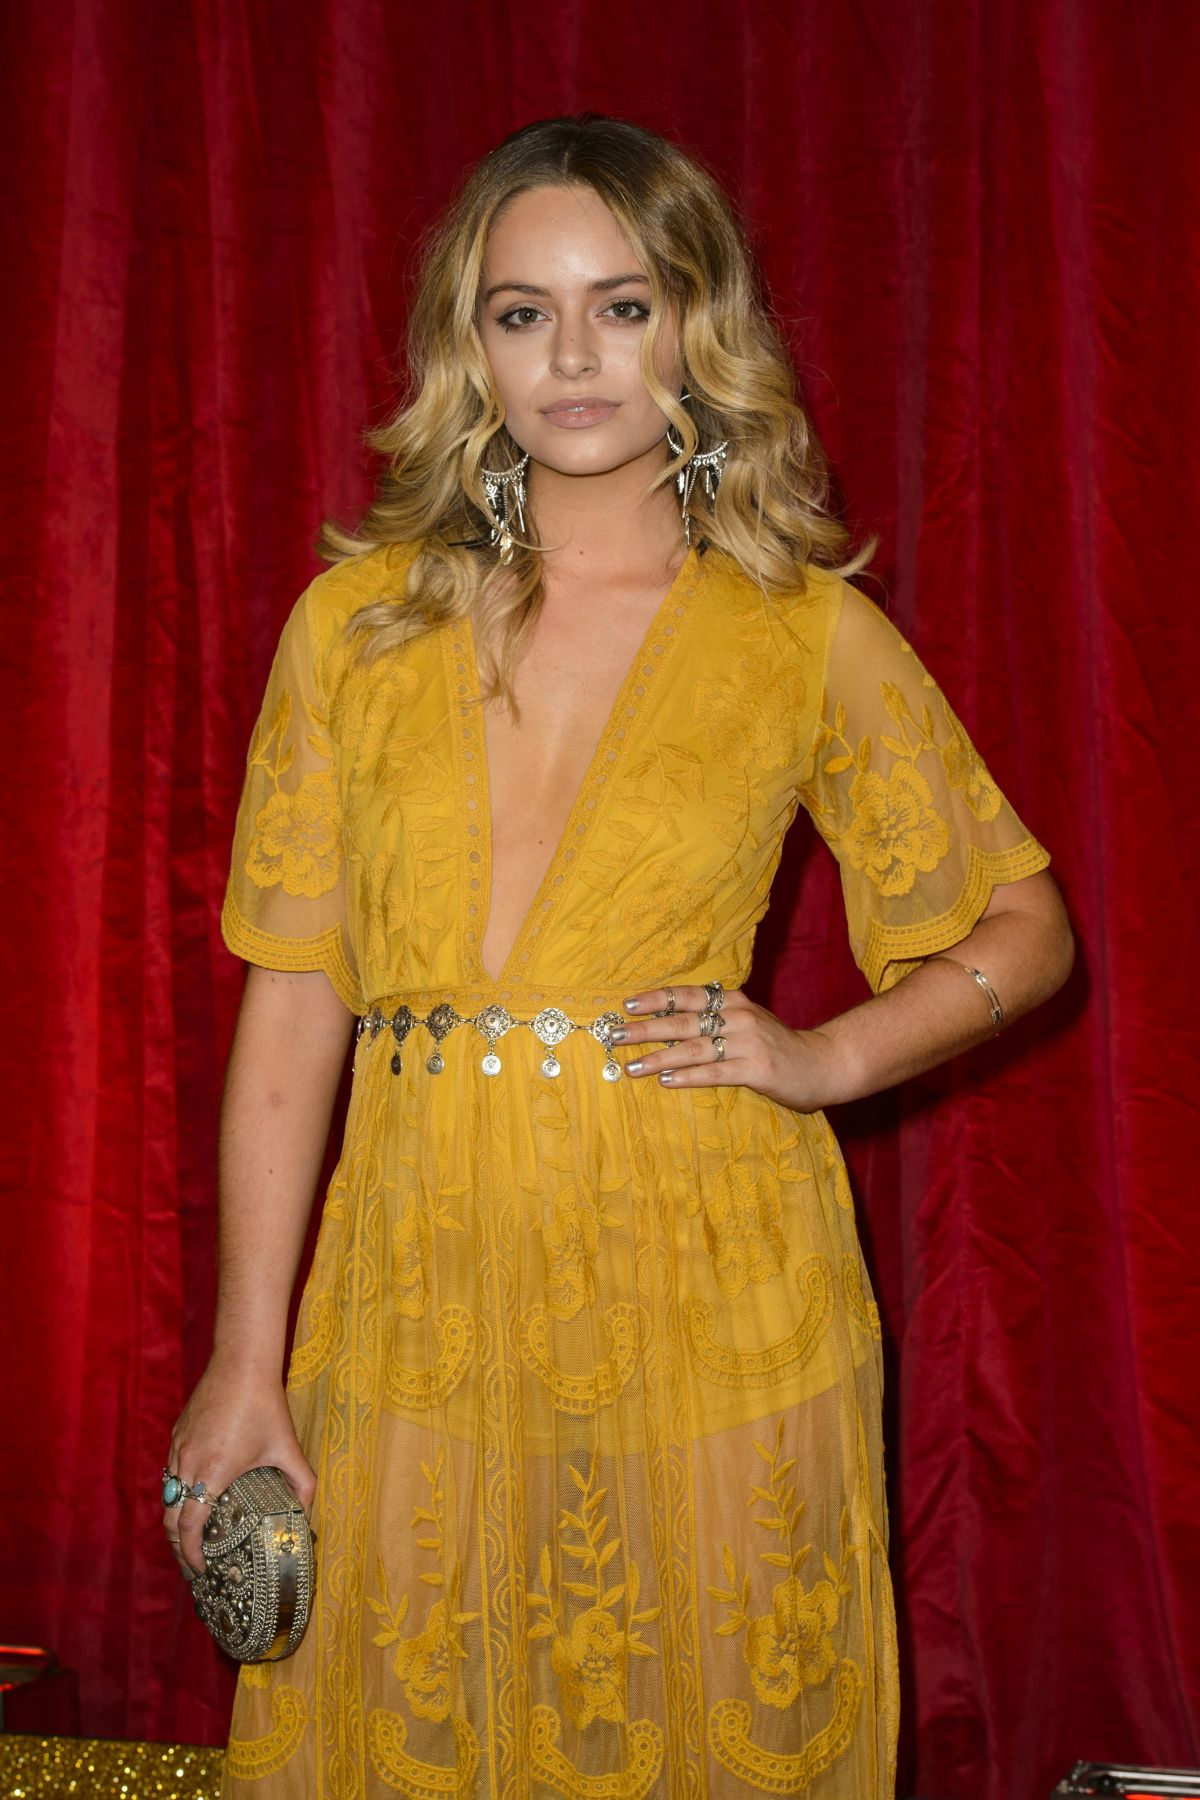 JENNIFER BROOKE at British Soap Awards 2016 in London 05/28/2016